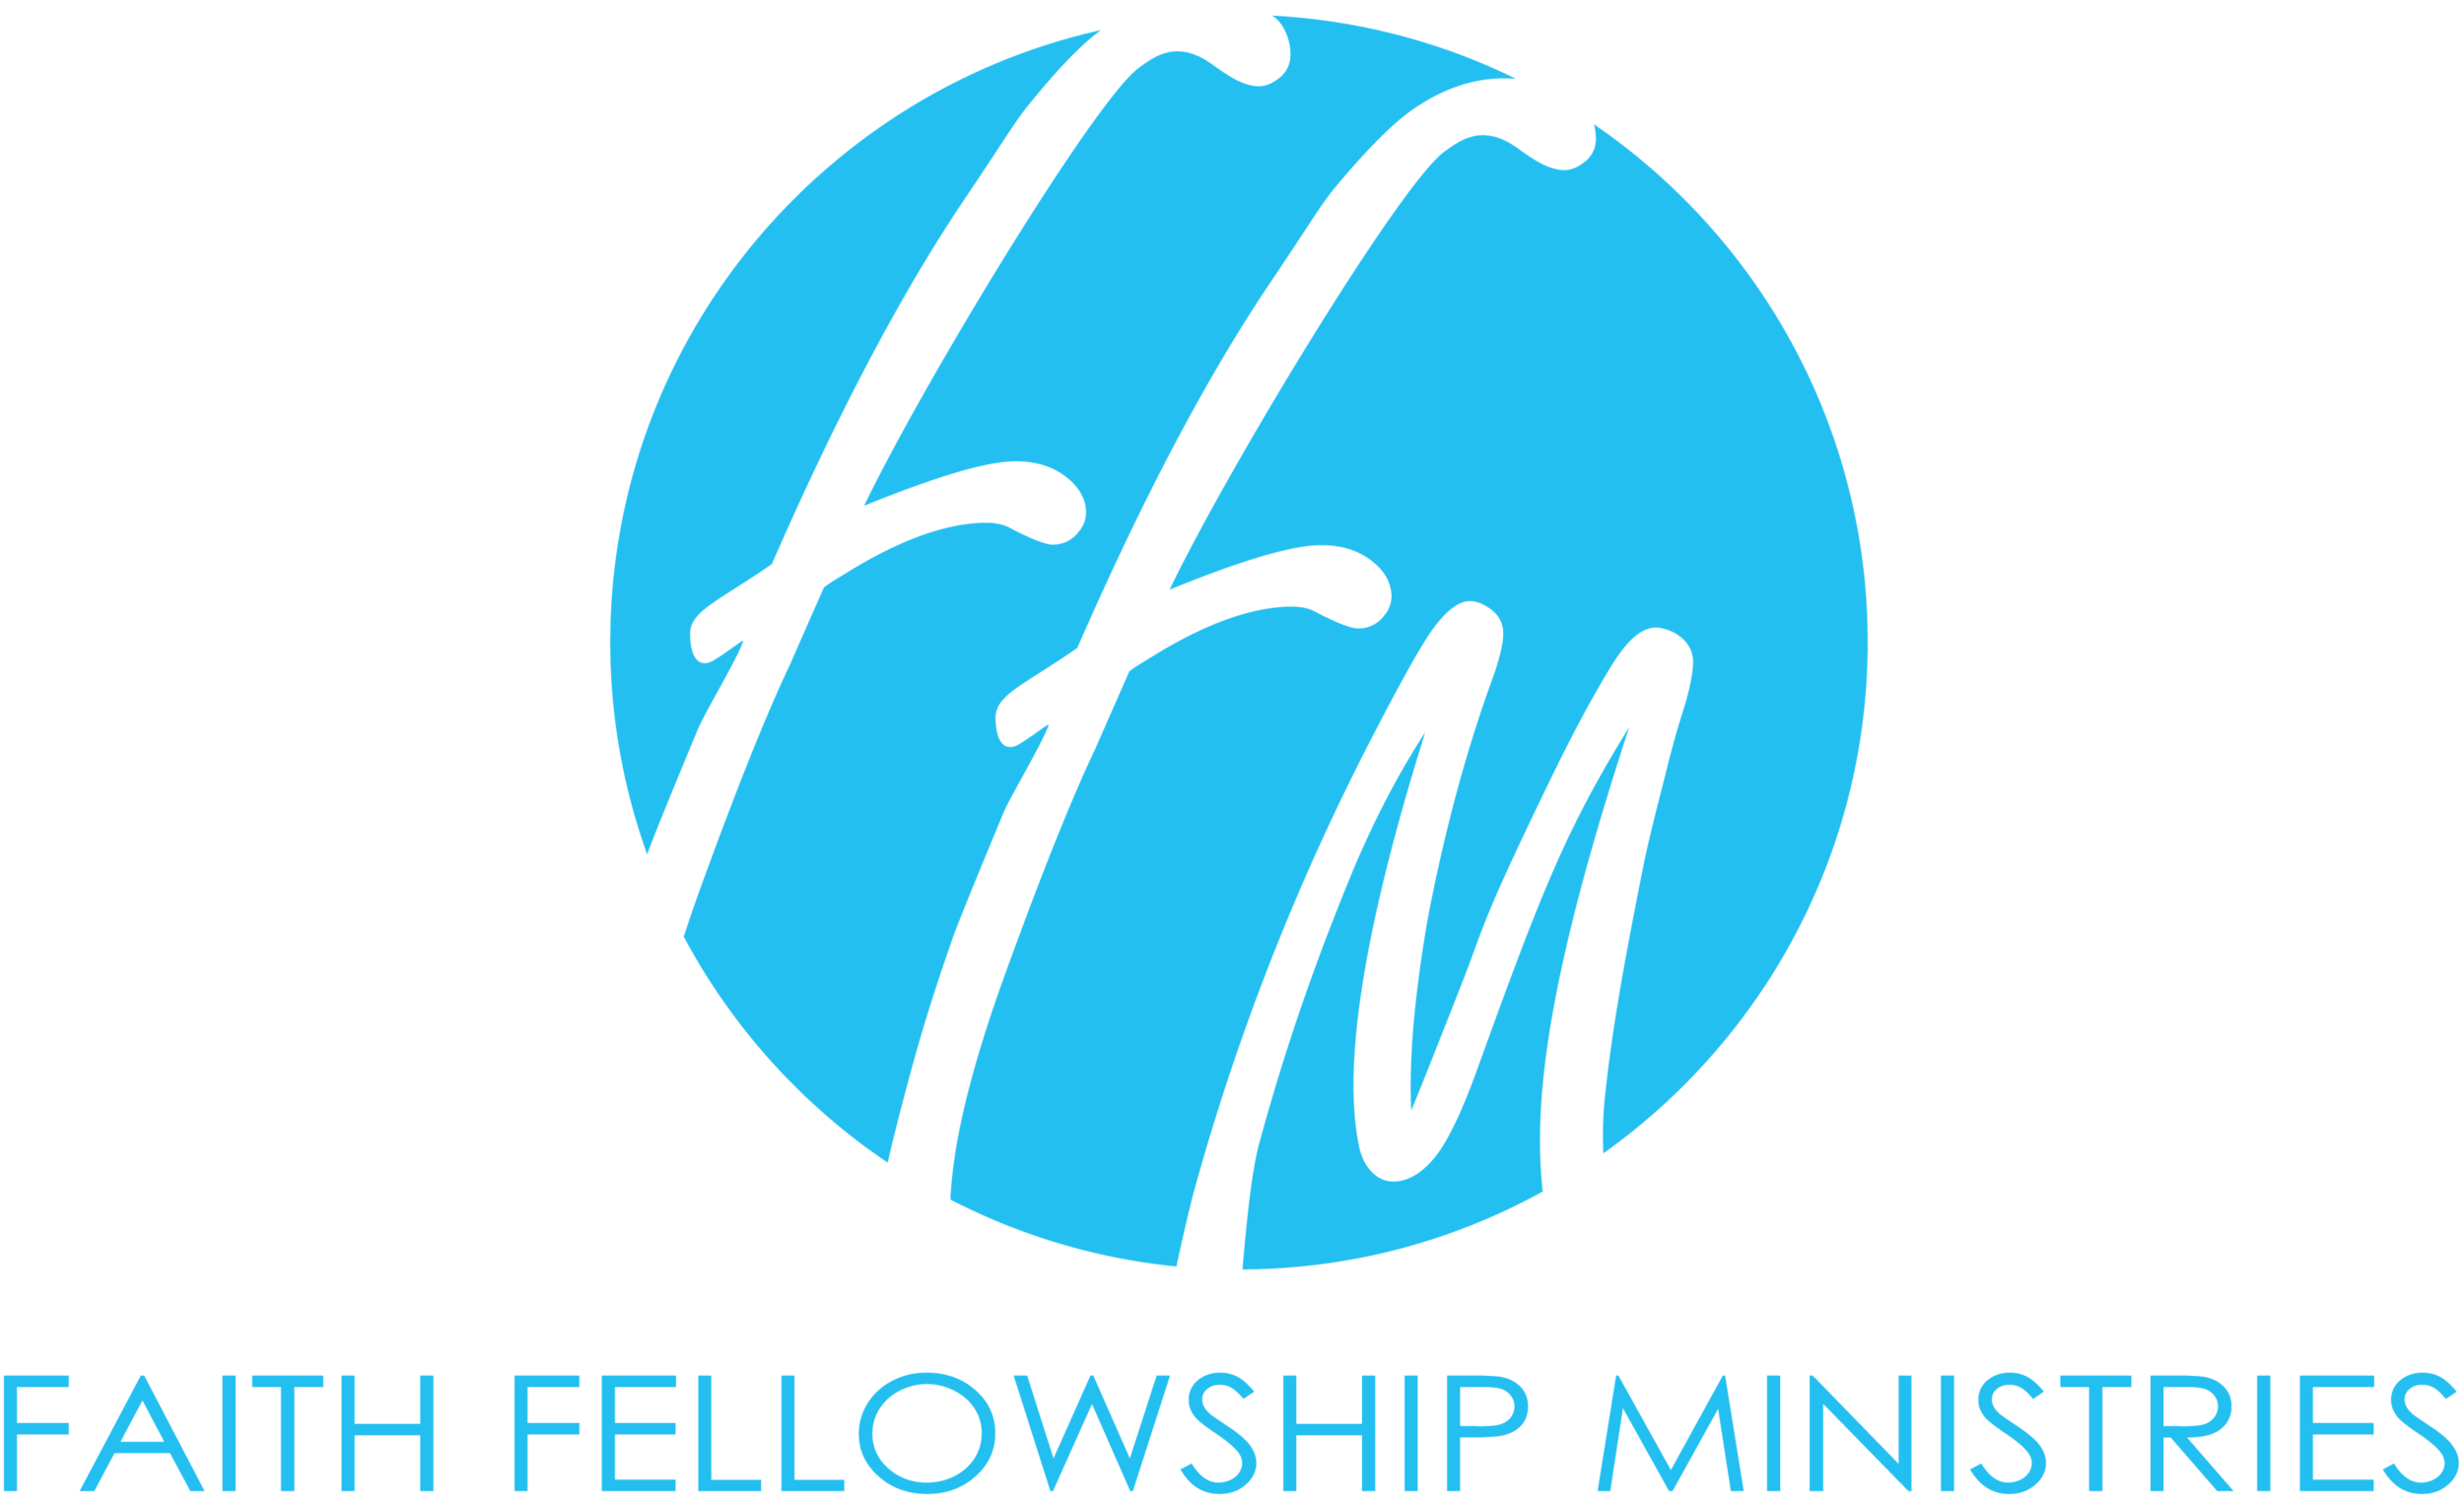 ffm-logo-centered_12inches-wide.png